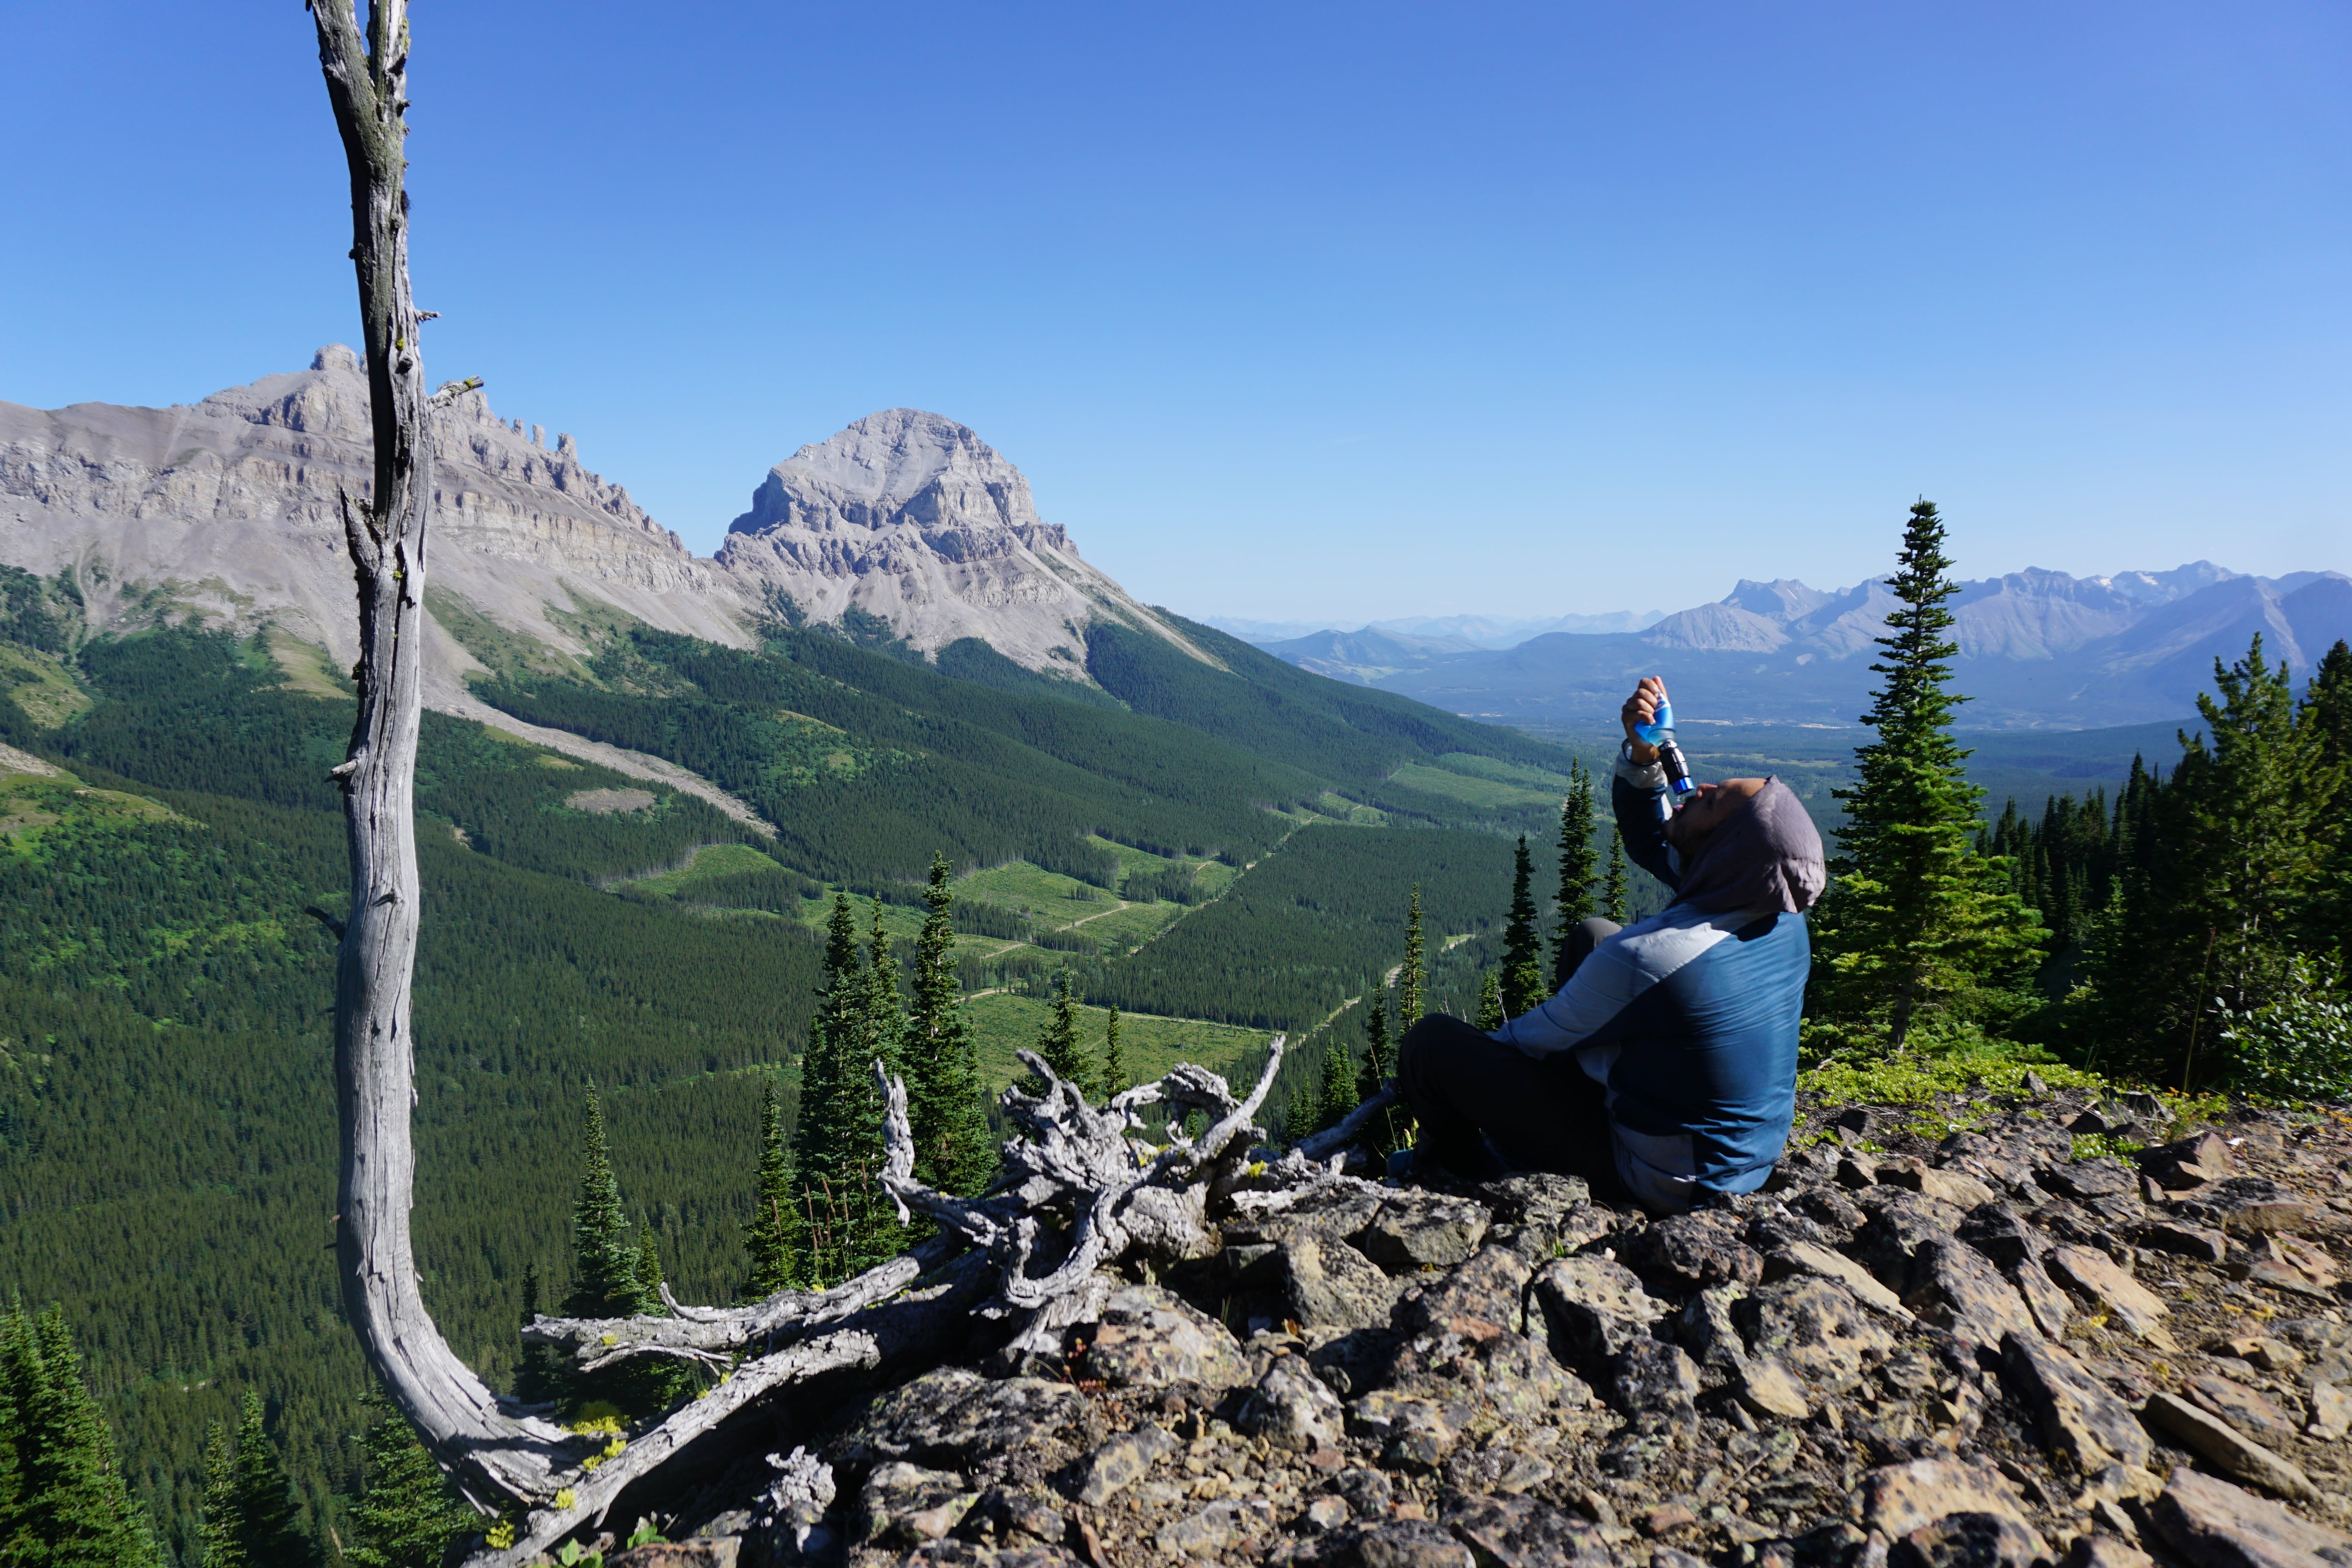 Hiker overlooks a lookout point and drinks from Sawyer filter